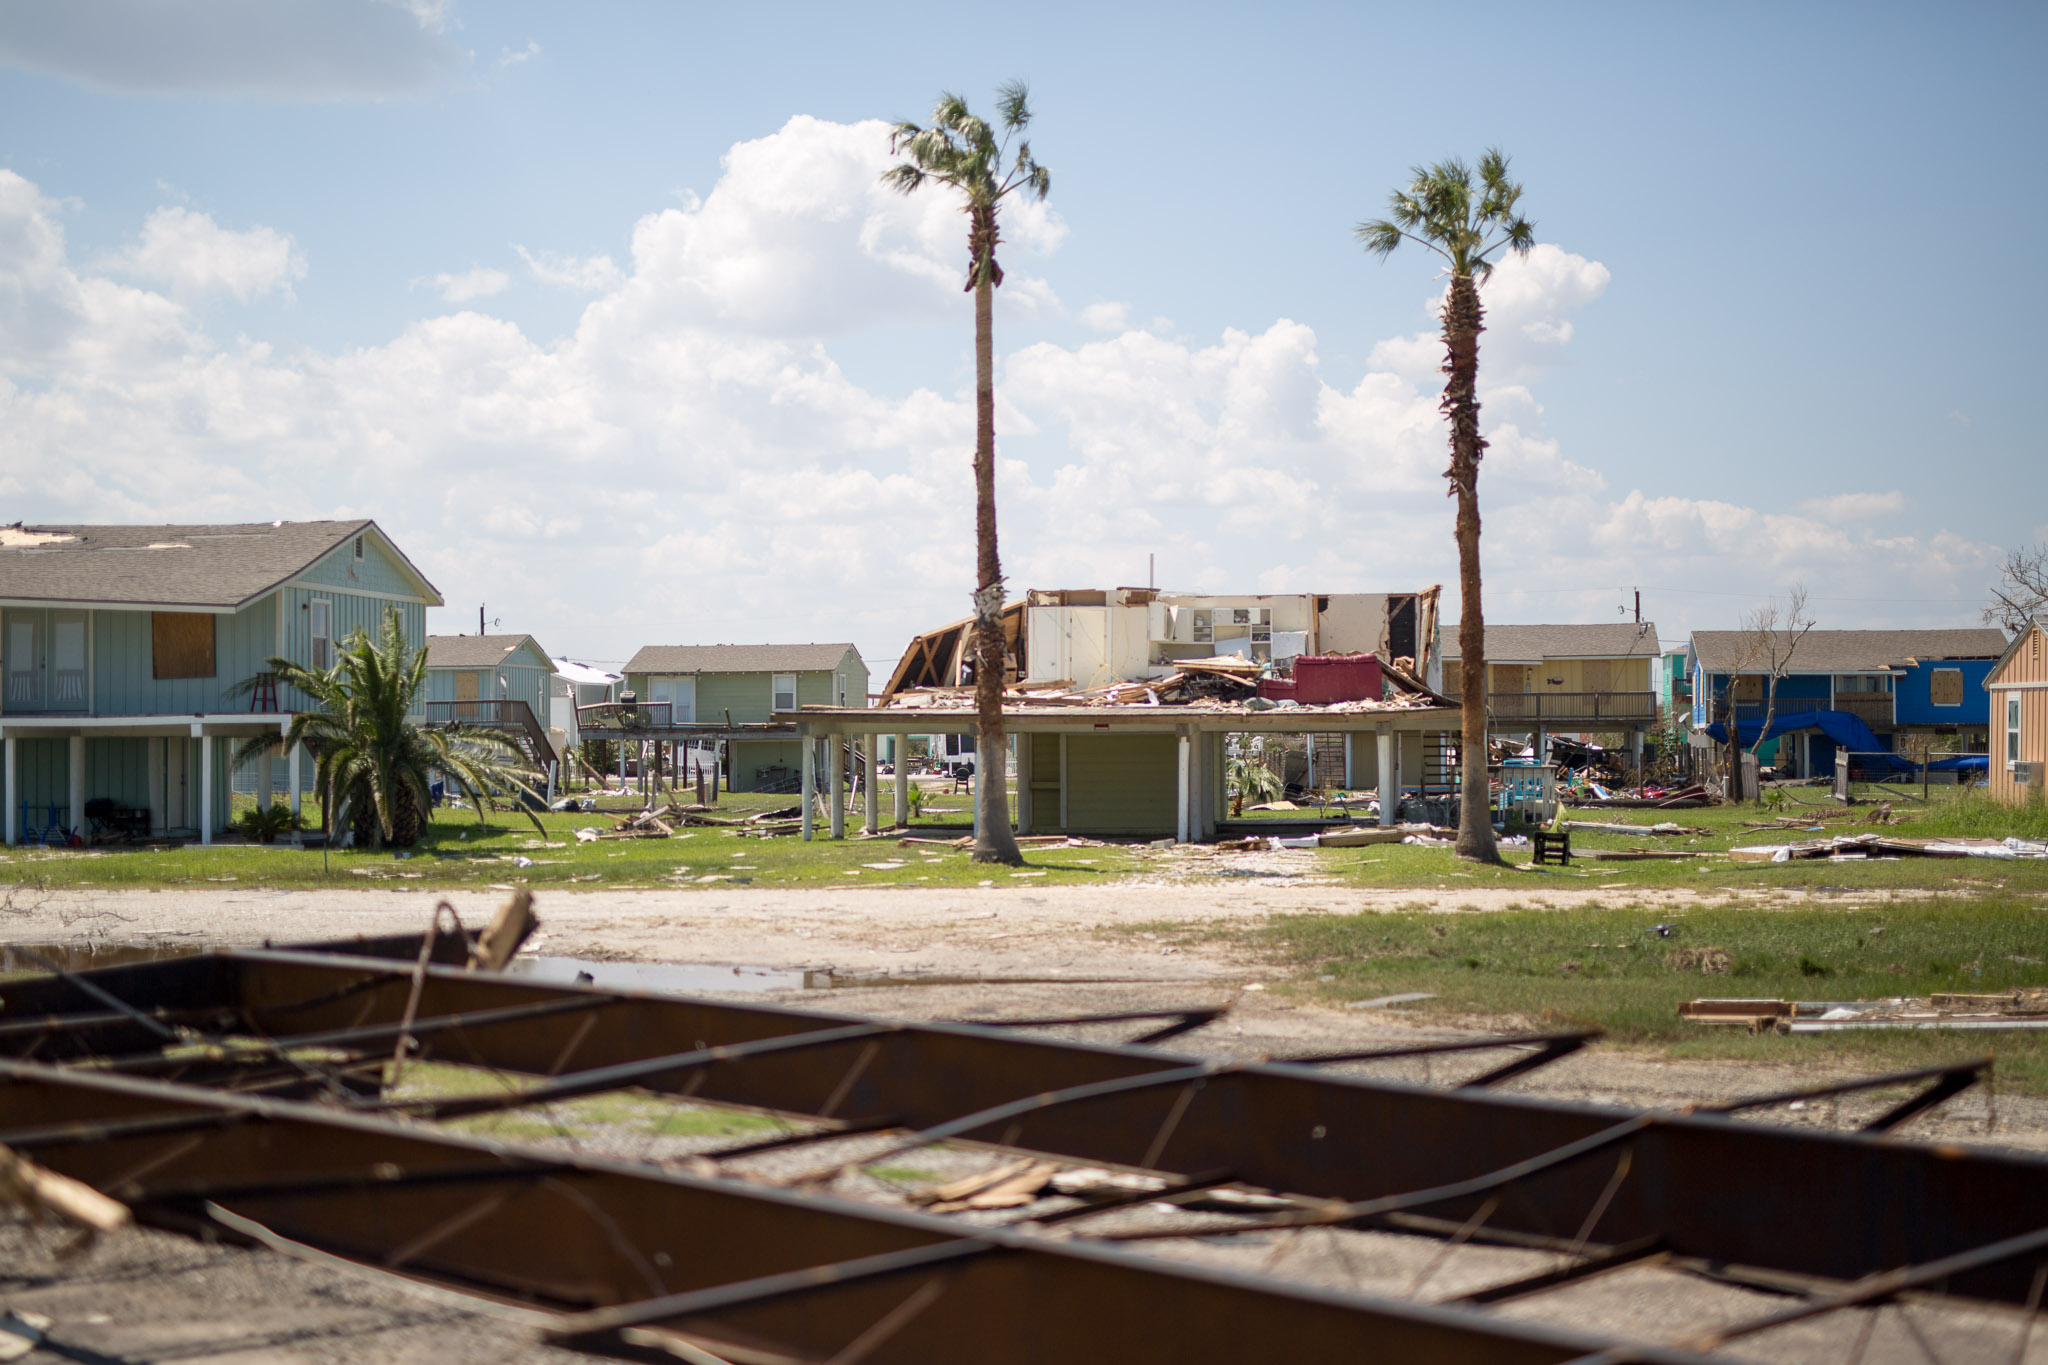 A house in Rockport Texas has been exposed completely following the damages of hurricane Harvey.